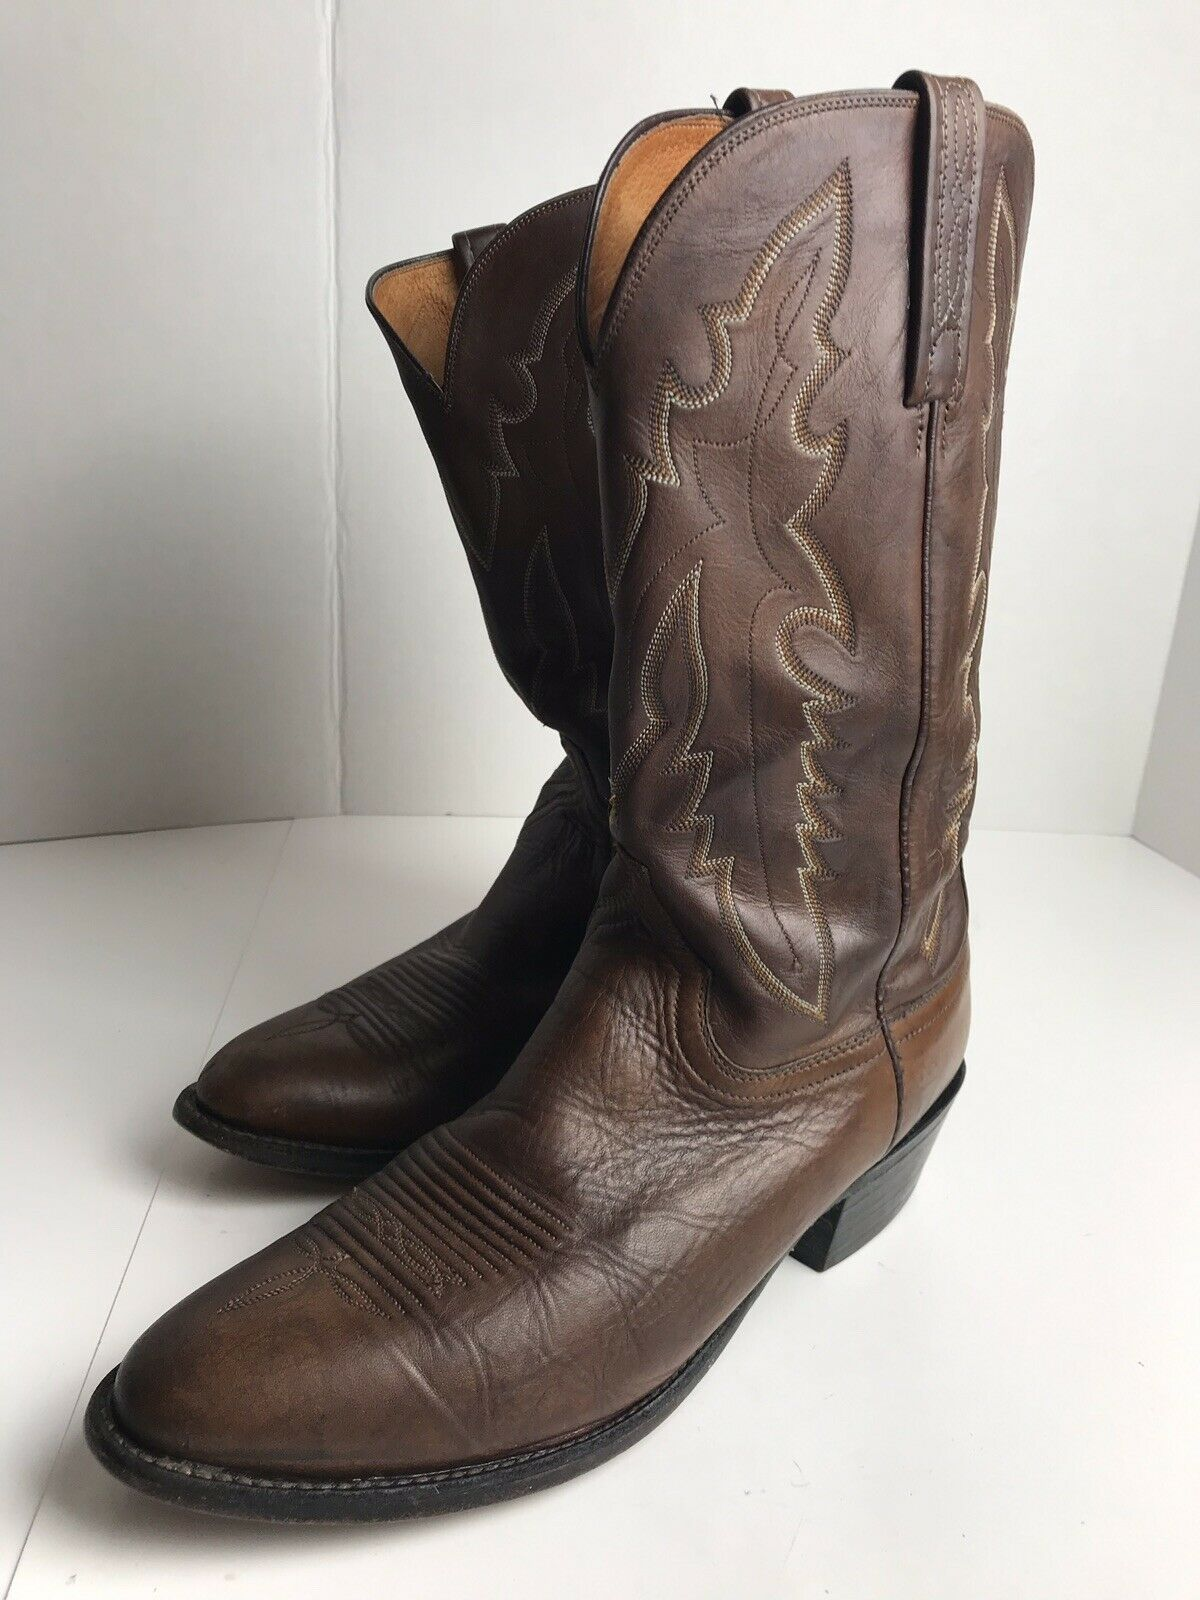 LUCCHESE 1883 Brown Leather Western Riding Cowboy Boots Men's Size 10 EE EUC